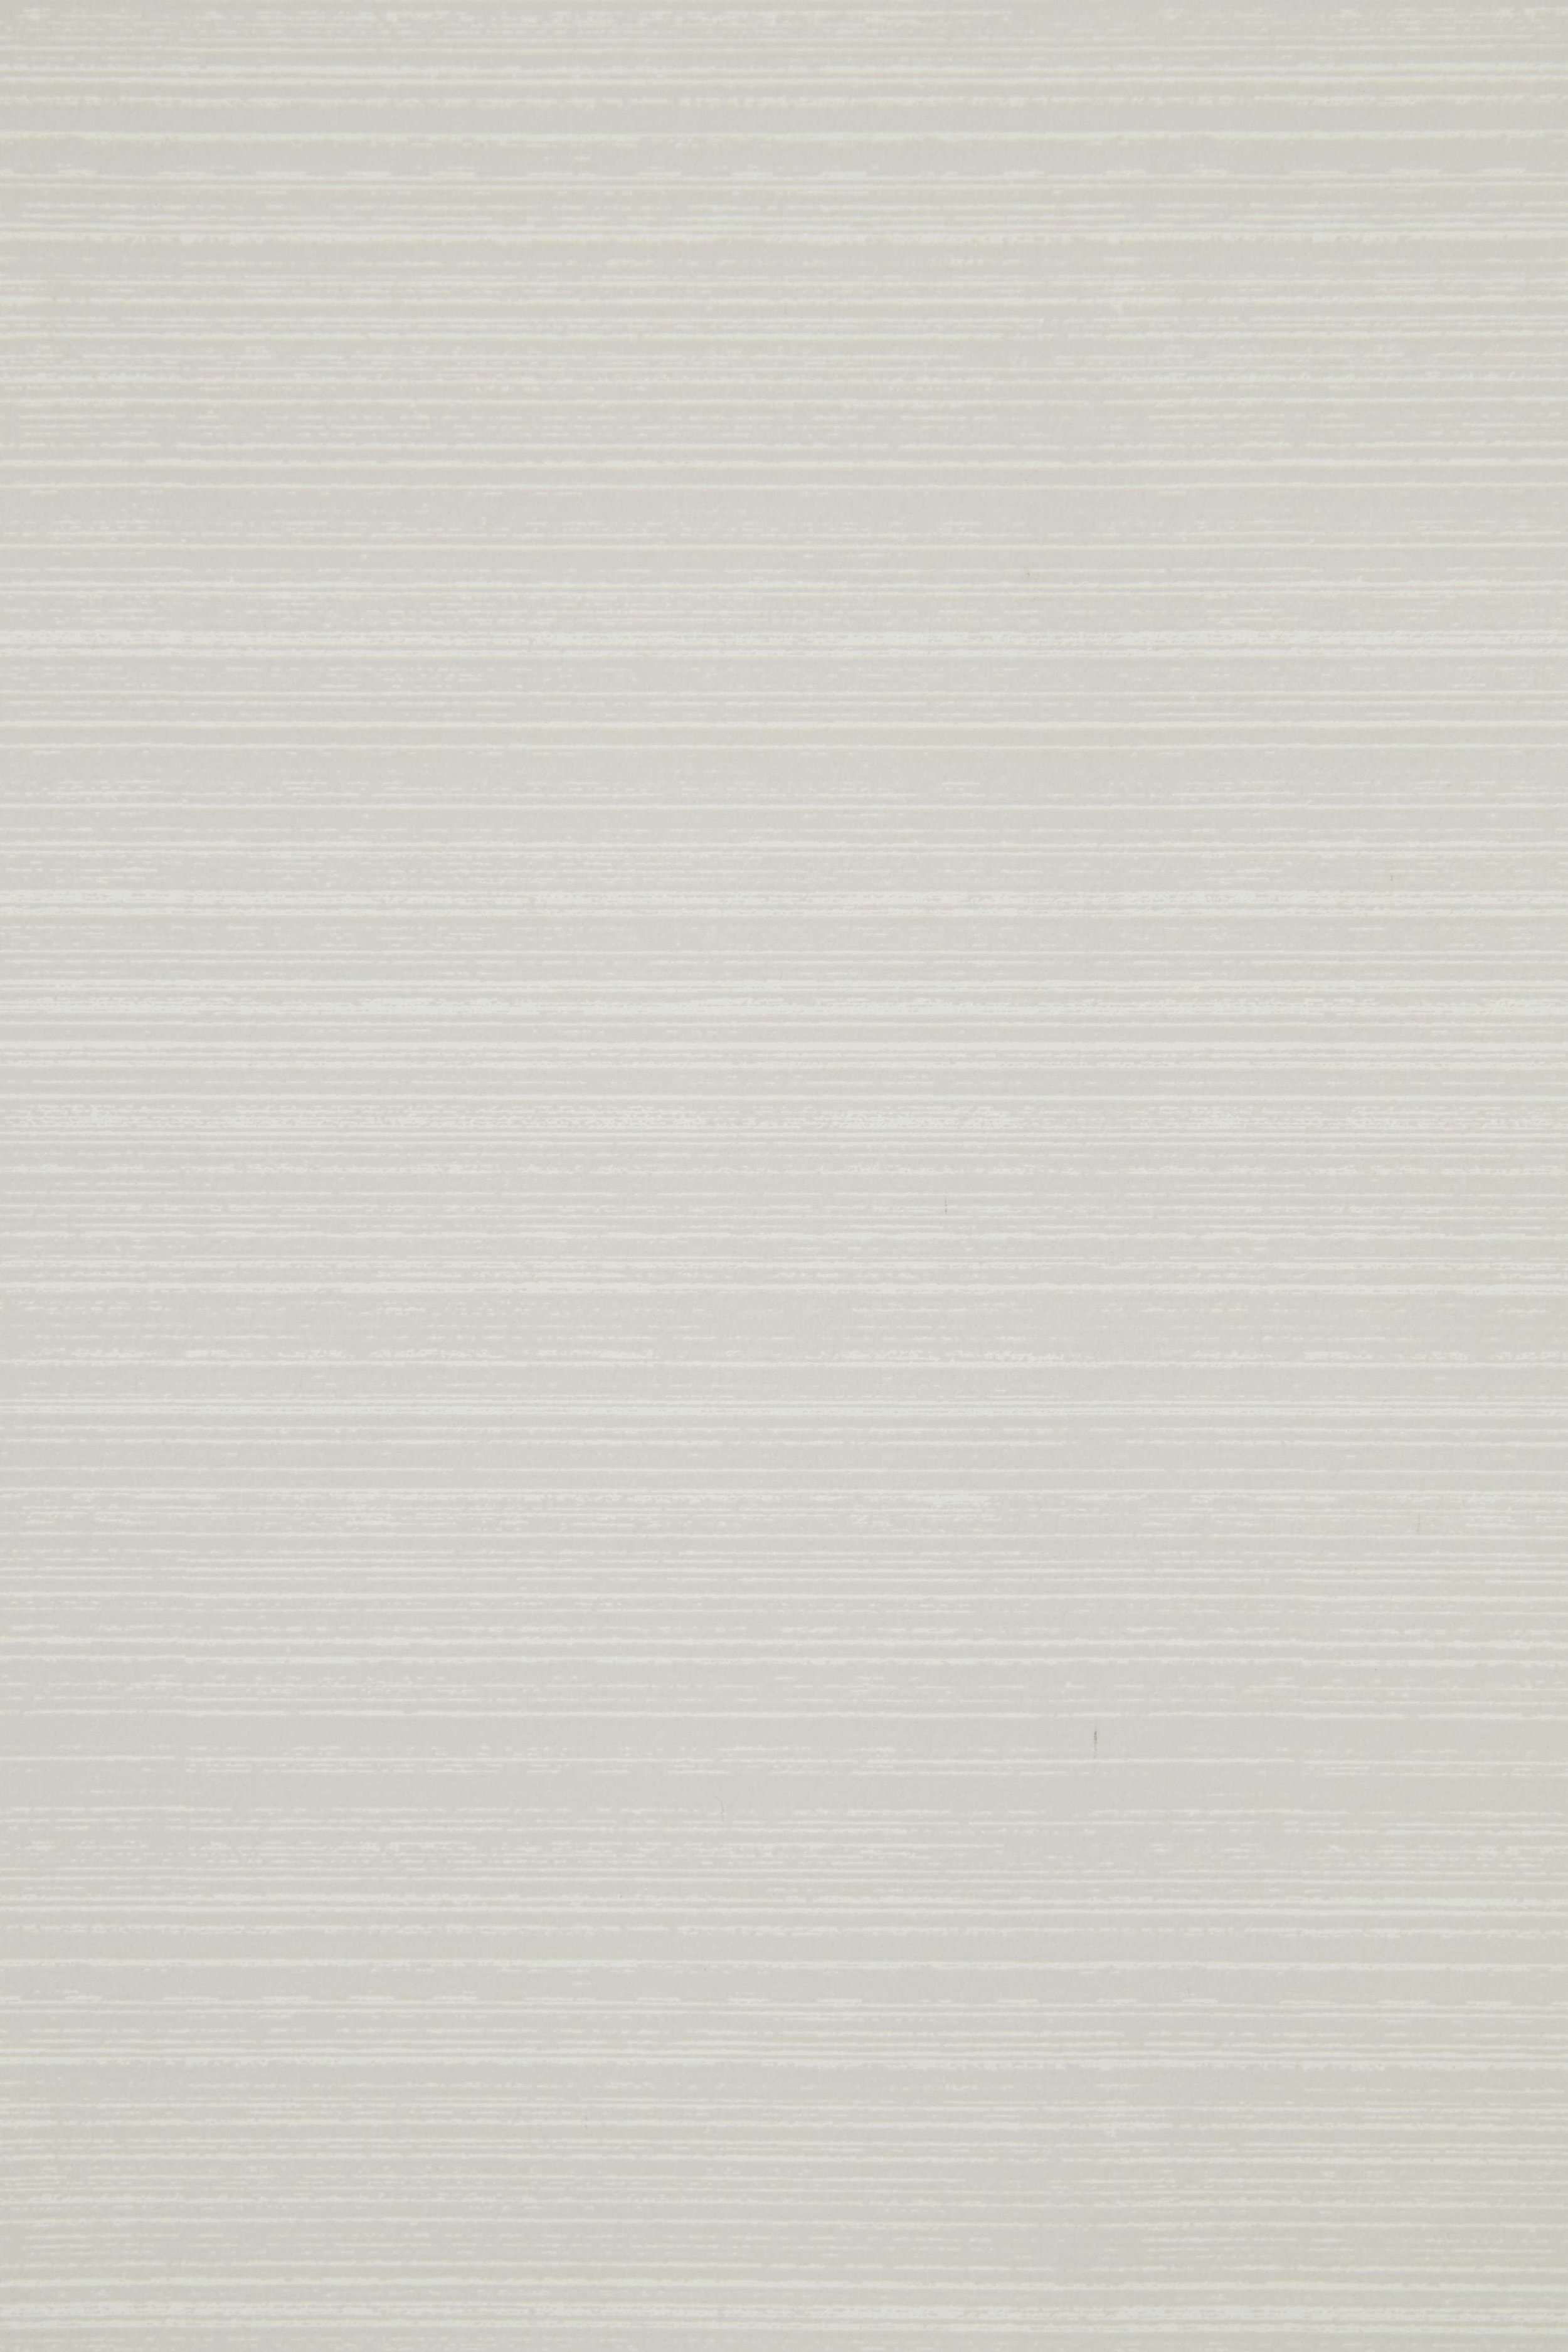 Painted Strie in Taupe, SL170-03